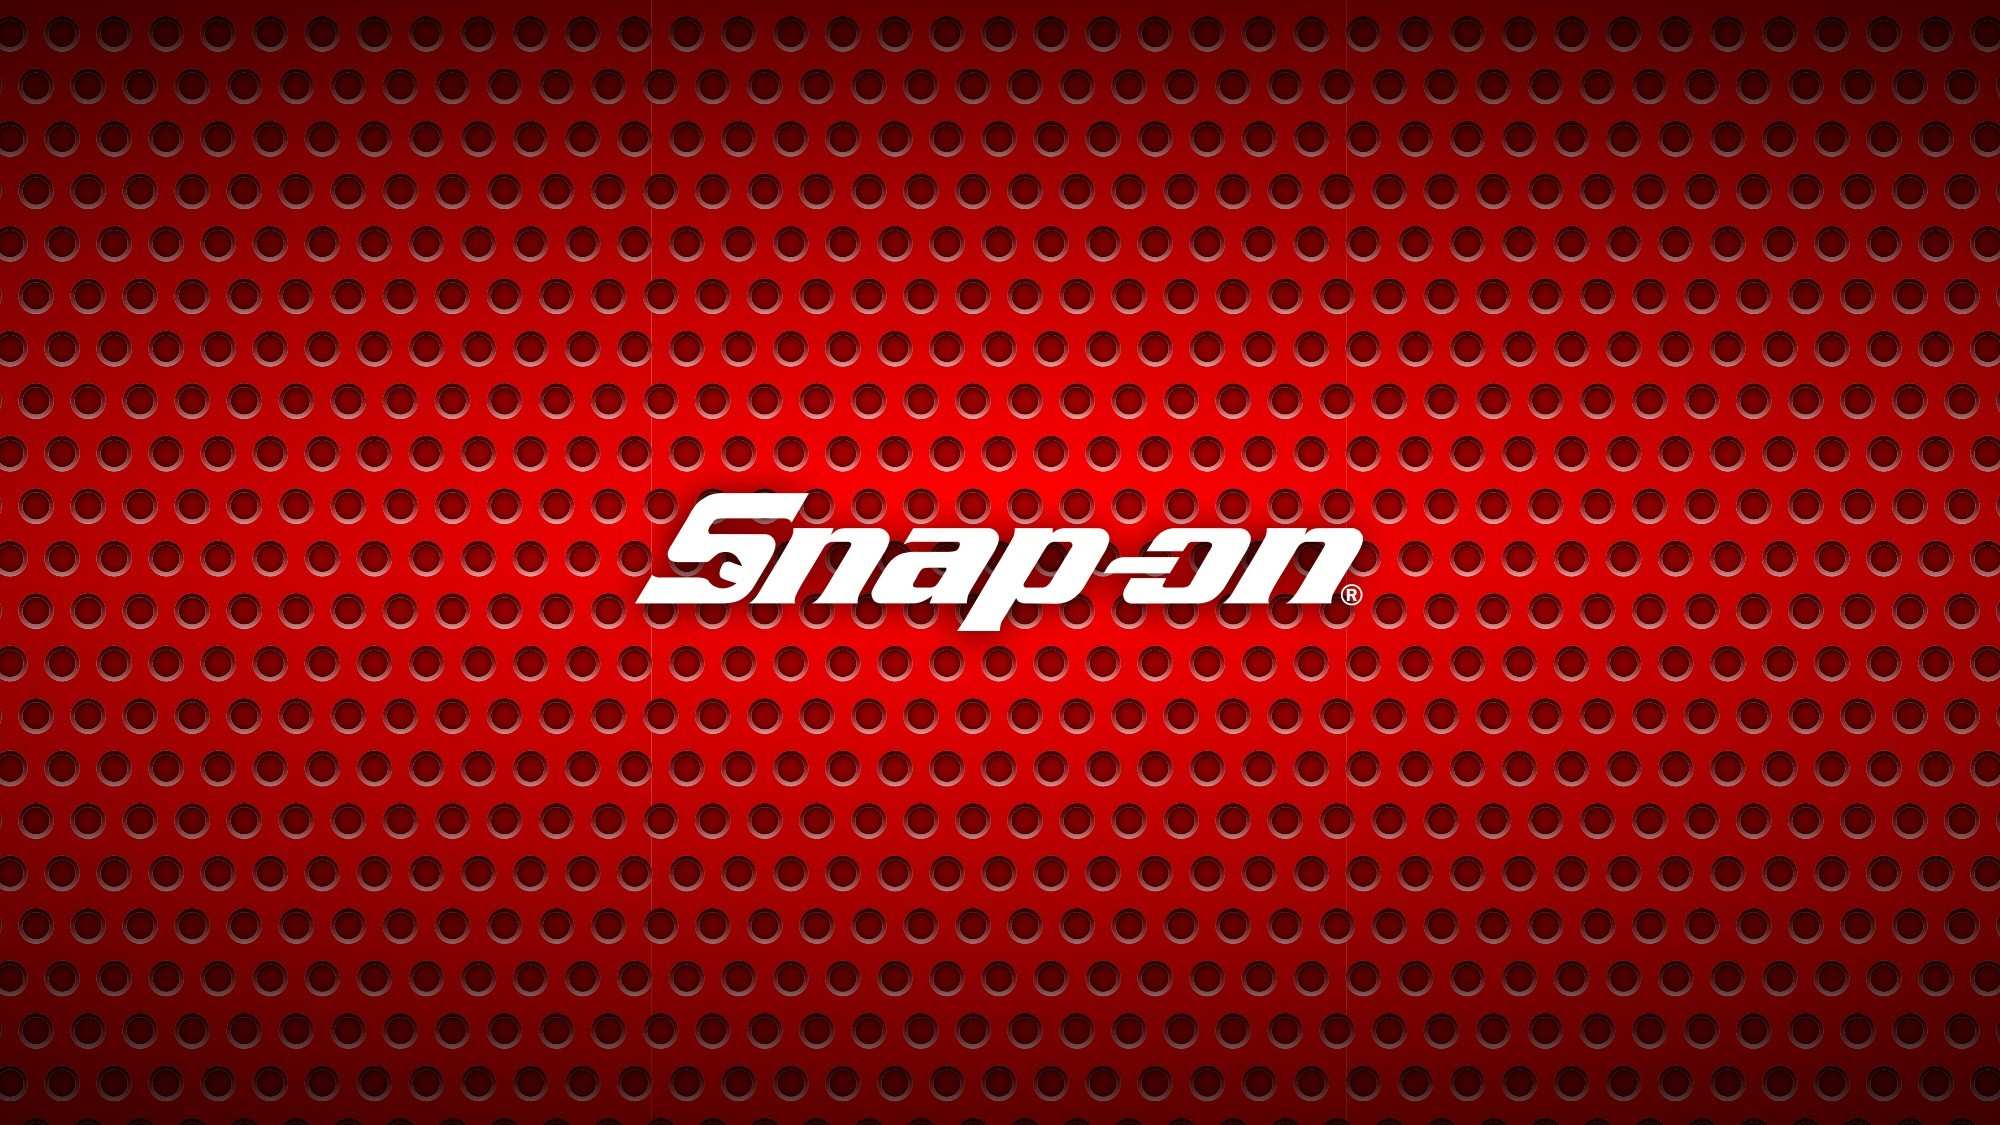 … snap on tools brands of the world download vector …